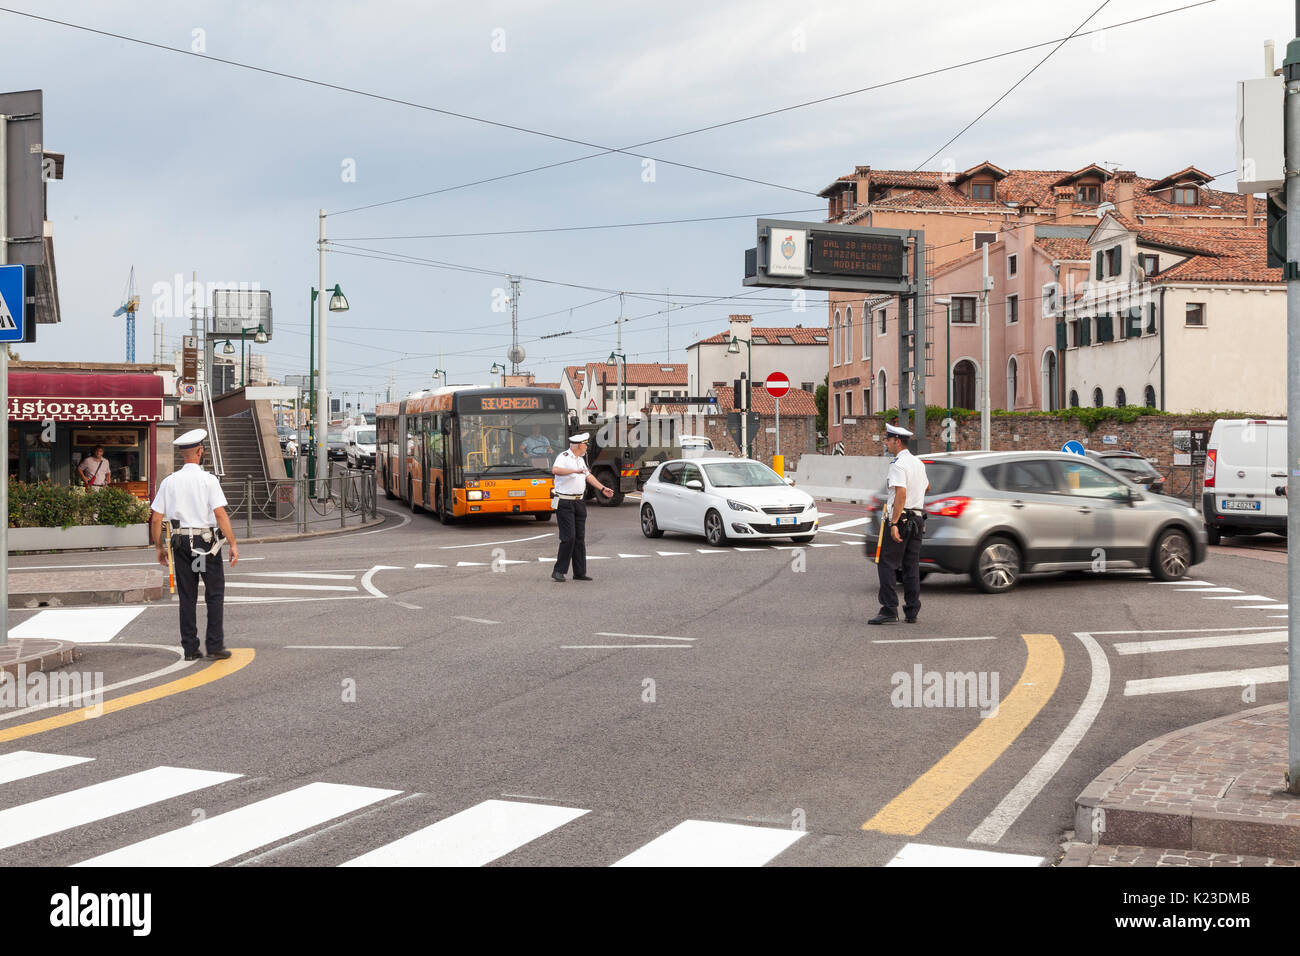 Venice, Veneto, Italy. 28th Aug, 2017. Anti-terror concrete barriers and police presence in Piazzale Roma ahead of the start of the Venice Film Festival. Officers directing vehicles. This is the first day after completion of the installation of the barriers to check the viabilty of traffic flow and pedestrians. An armoured car was in place on Ponte della Liberta blocking one lane. The barriers are designed to block any vehicular attack. Credit: Mary Clarke/Alamy Live News - Stock Image